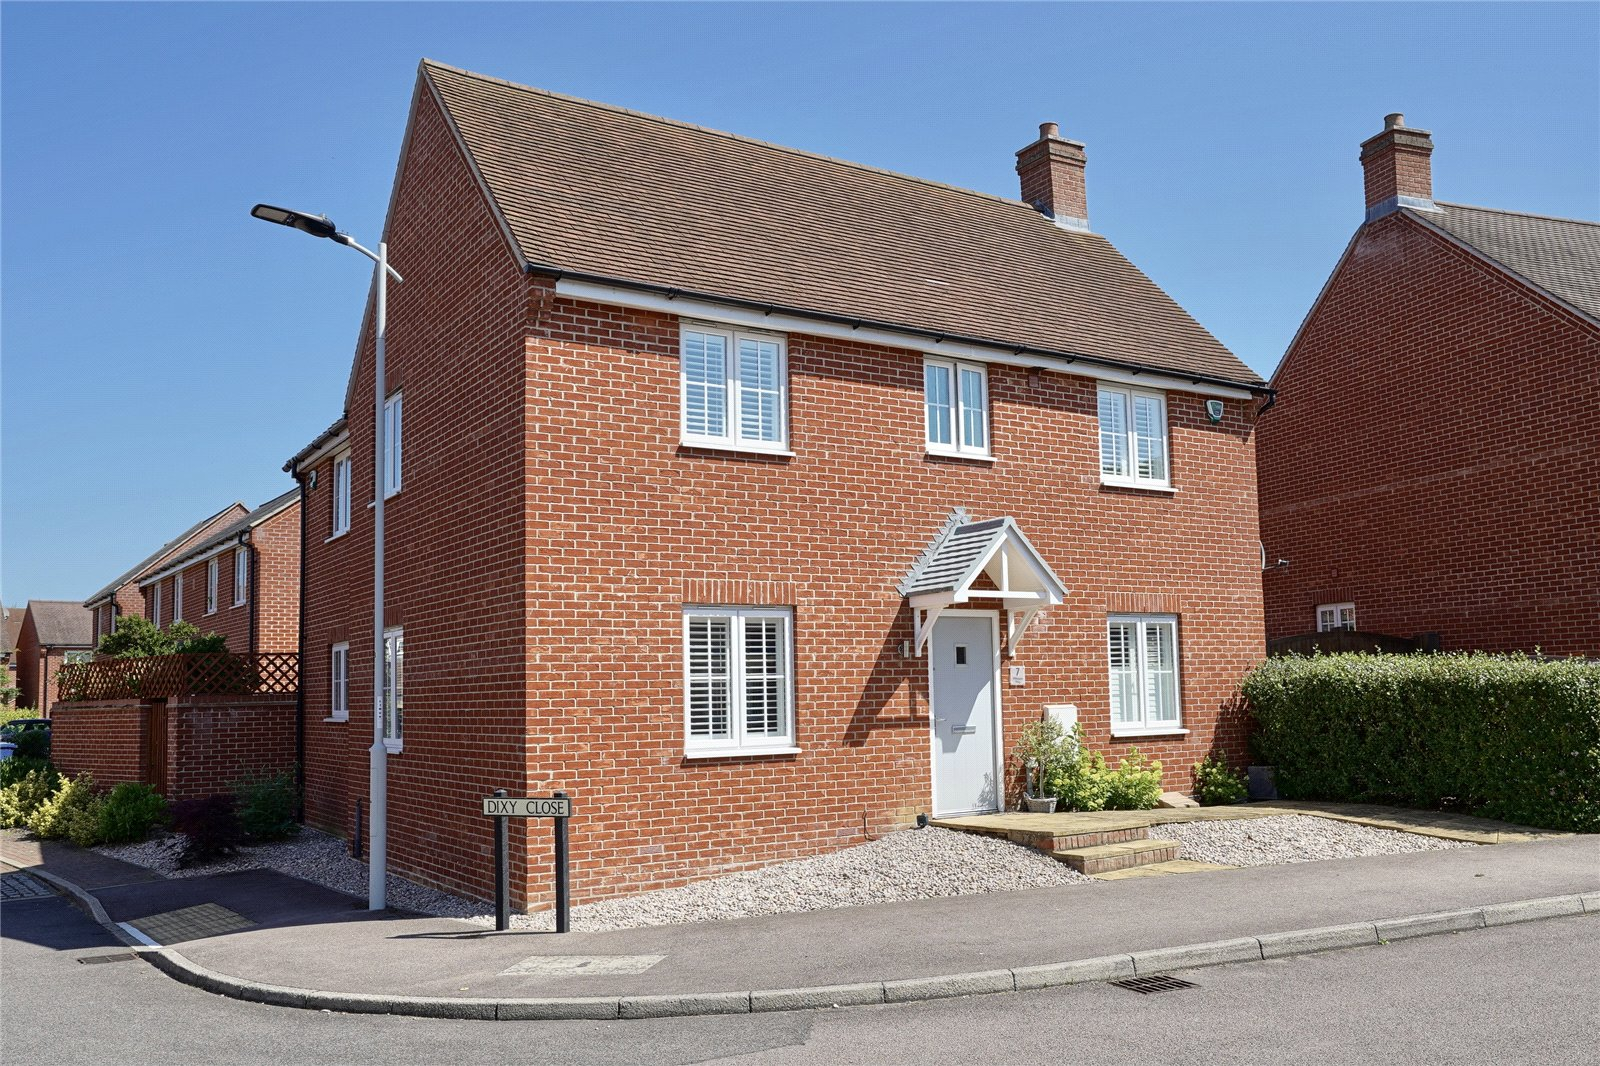 4 bed house for sale in Whiston Way, St. Neots, PE19